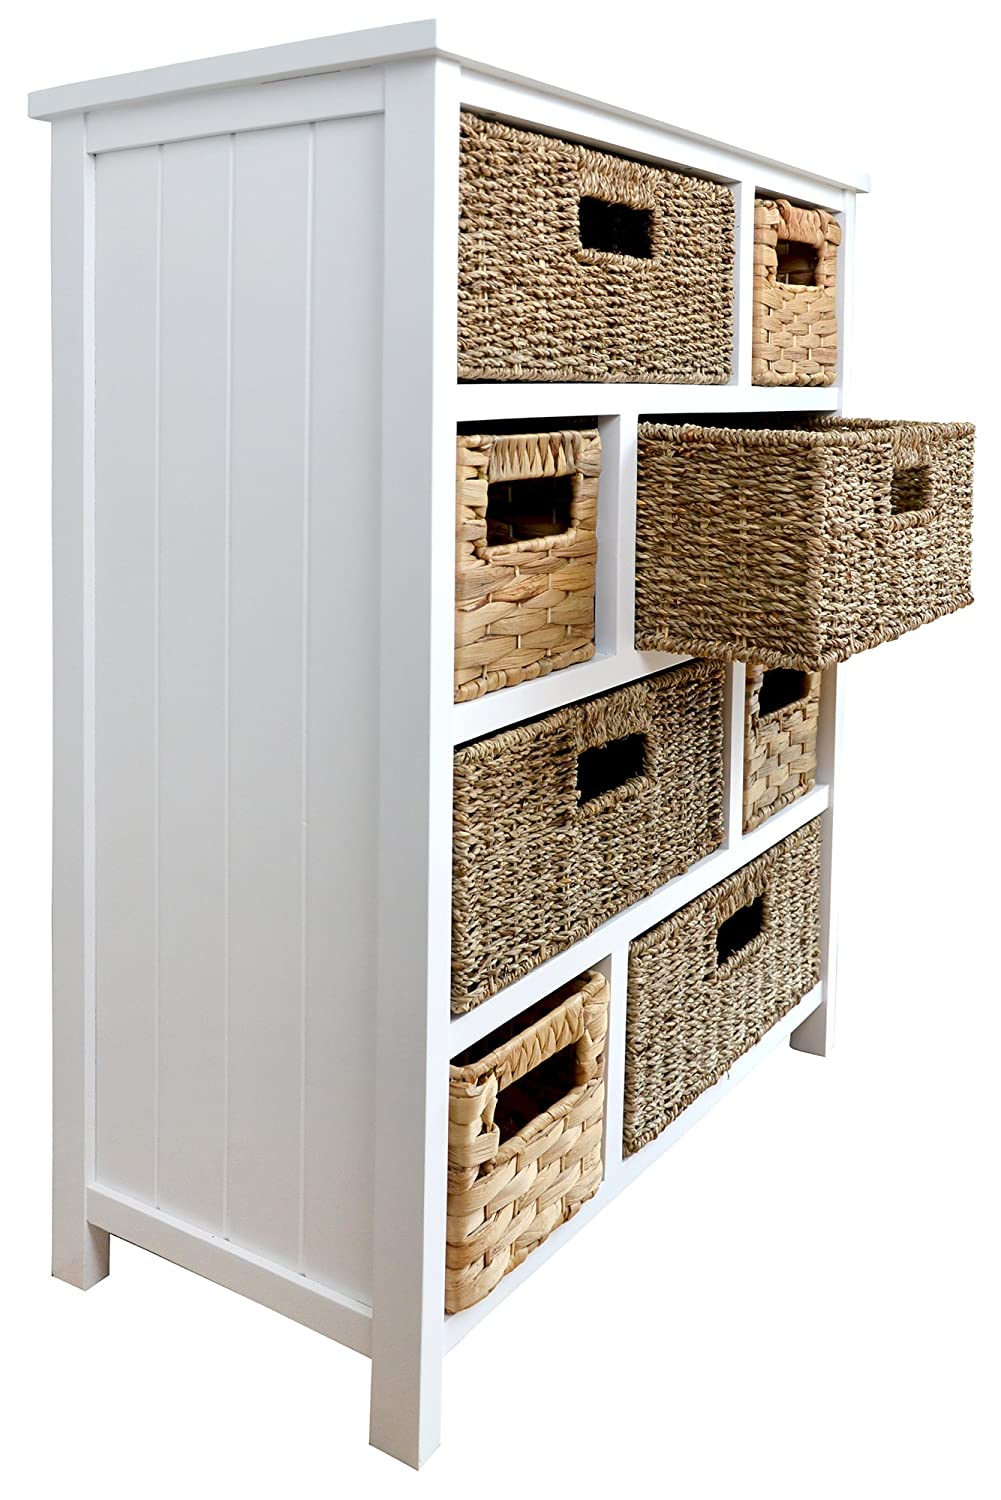 Tetbury white storage unit with 5 drawers bedroom furniture direct - Tetbury Large White Storage Chest Of Drawers Sturdy White Basket Storage Unit Bathroom Hallway Storage Assembled Amazon Co Uk Kitchen Home